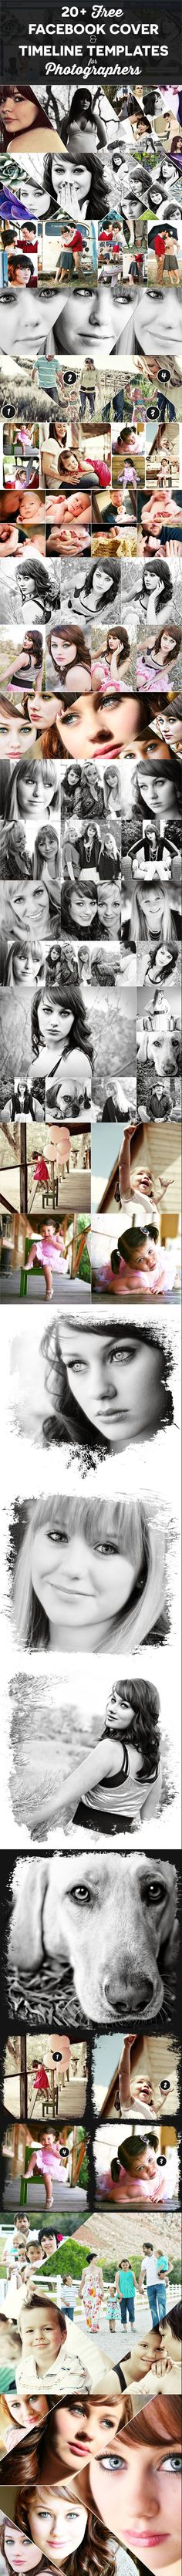 23 Free Facebook Cover Photoshop Templates & Timeline Photo Collage Templates for Photographers